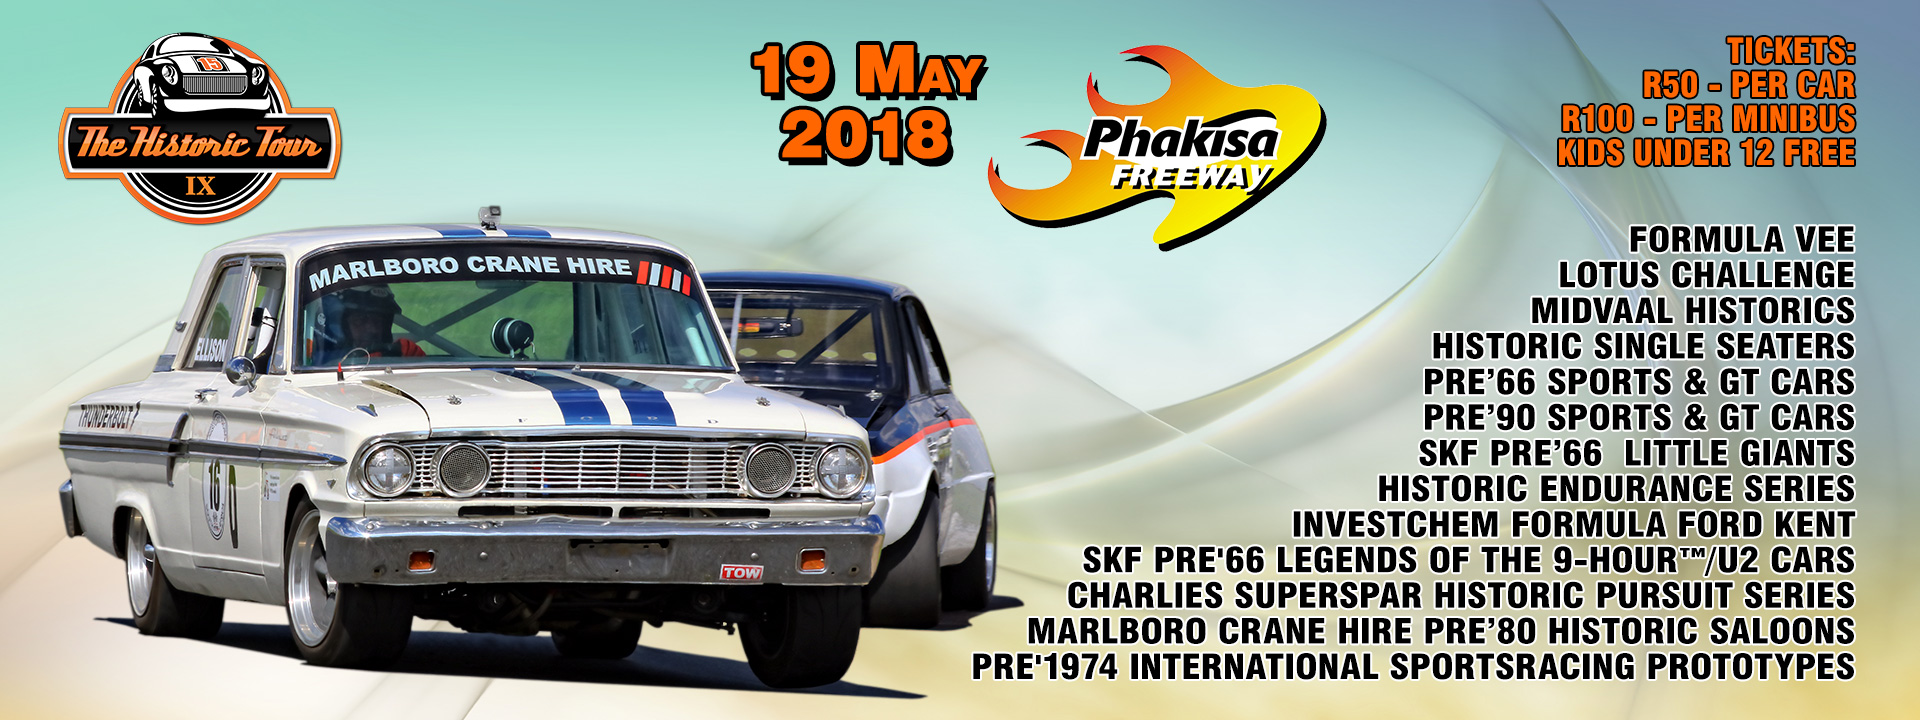 Entries open for Round 3 of Historic Tour at Phakisa on 19 May 2018